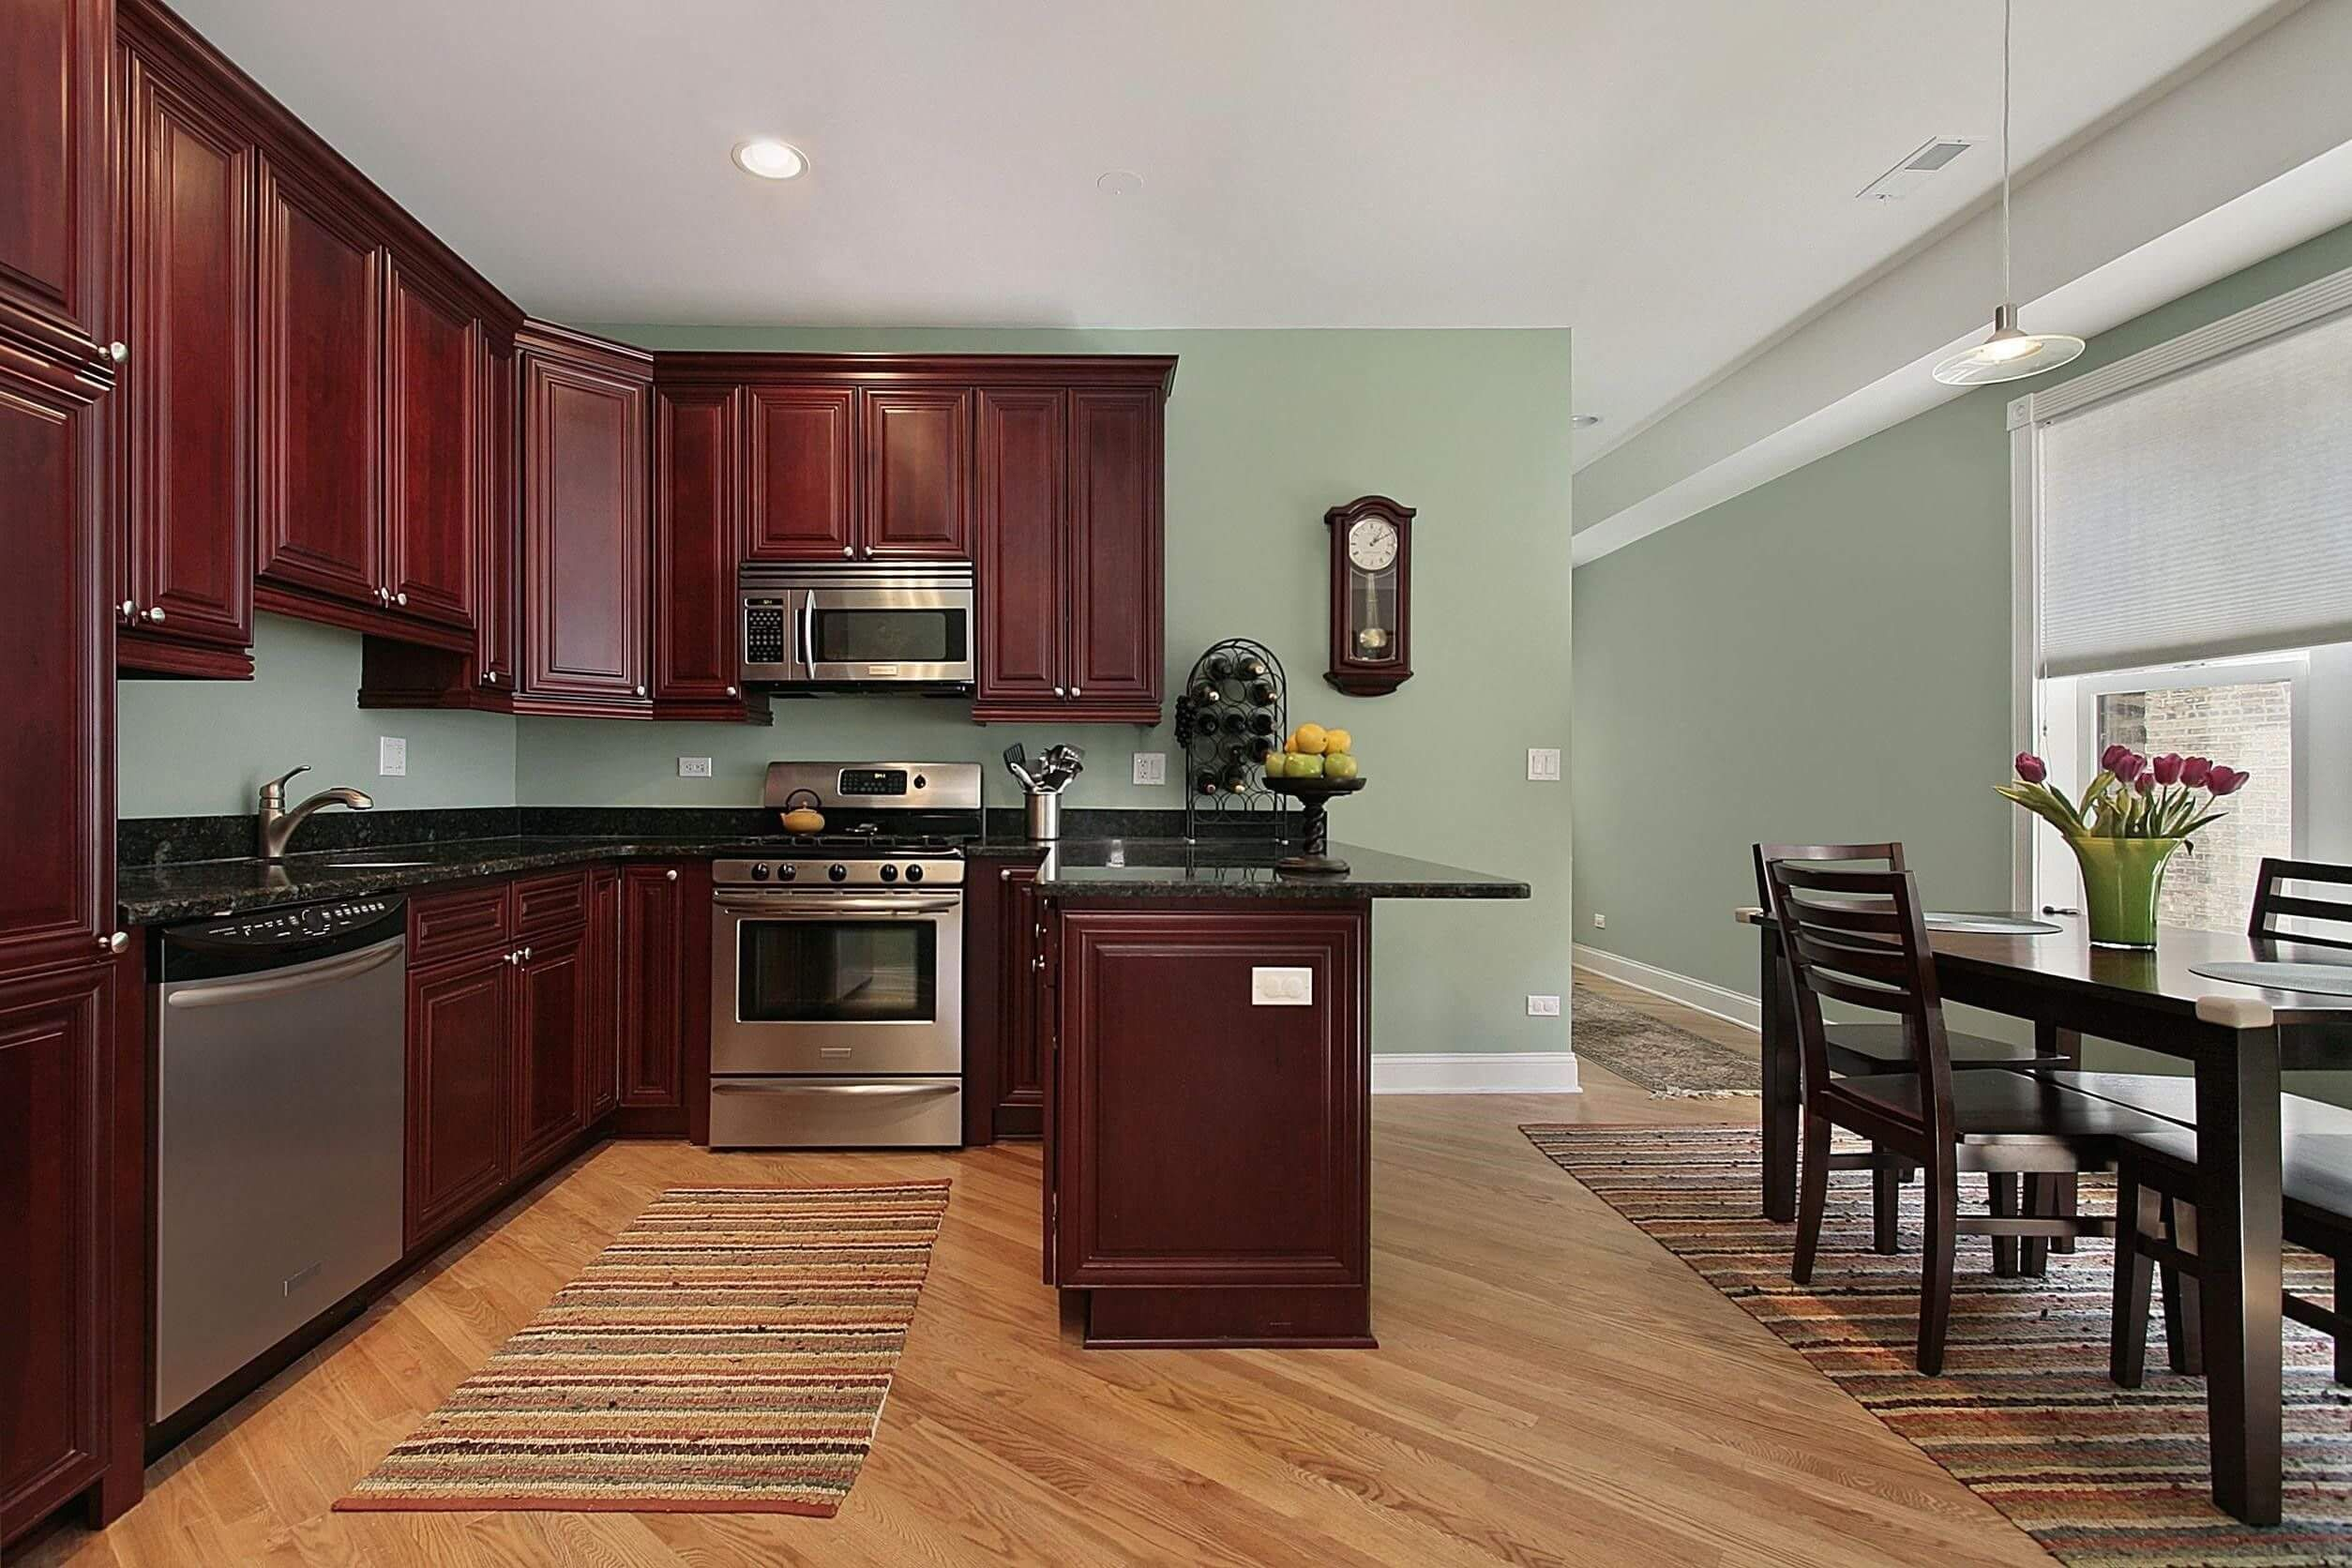 Trending Kitchen Wall Colors For The Year 2019 Green Kitchen Walls Paint For Kitchen Walls Country Kitchen Colors Paint colors for kitchen with dark cabinets